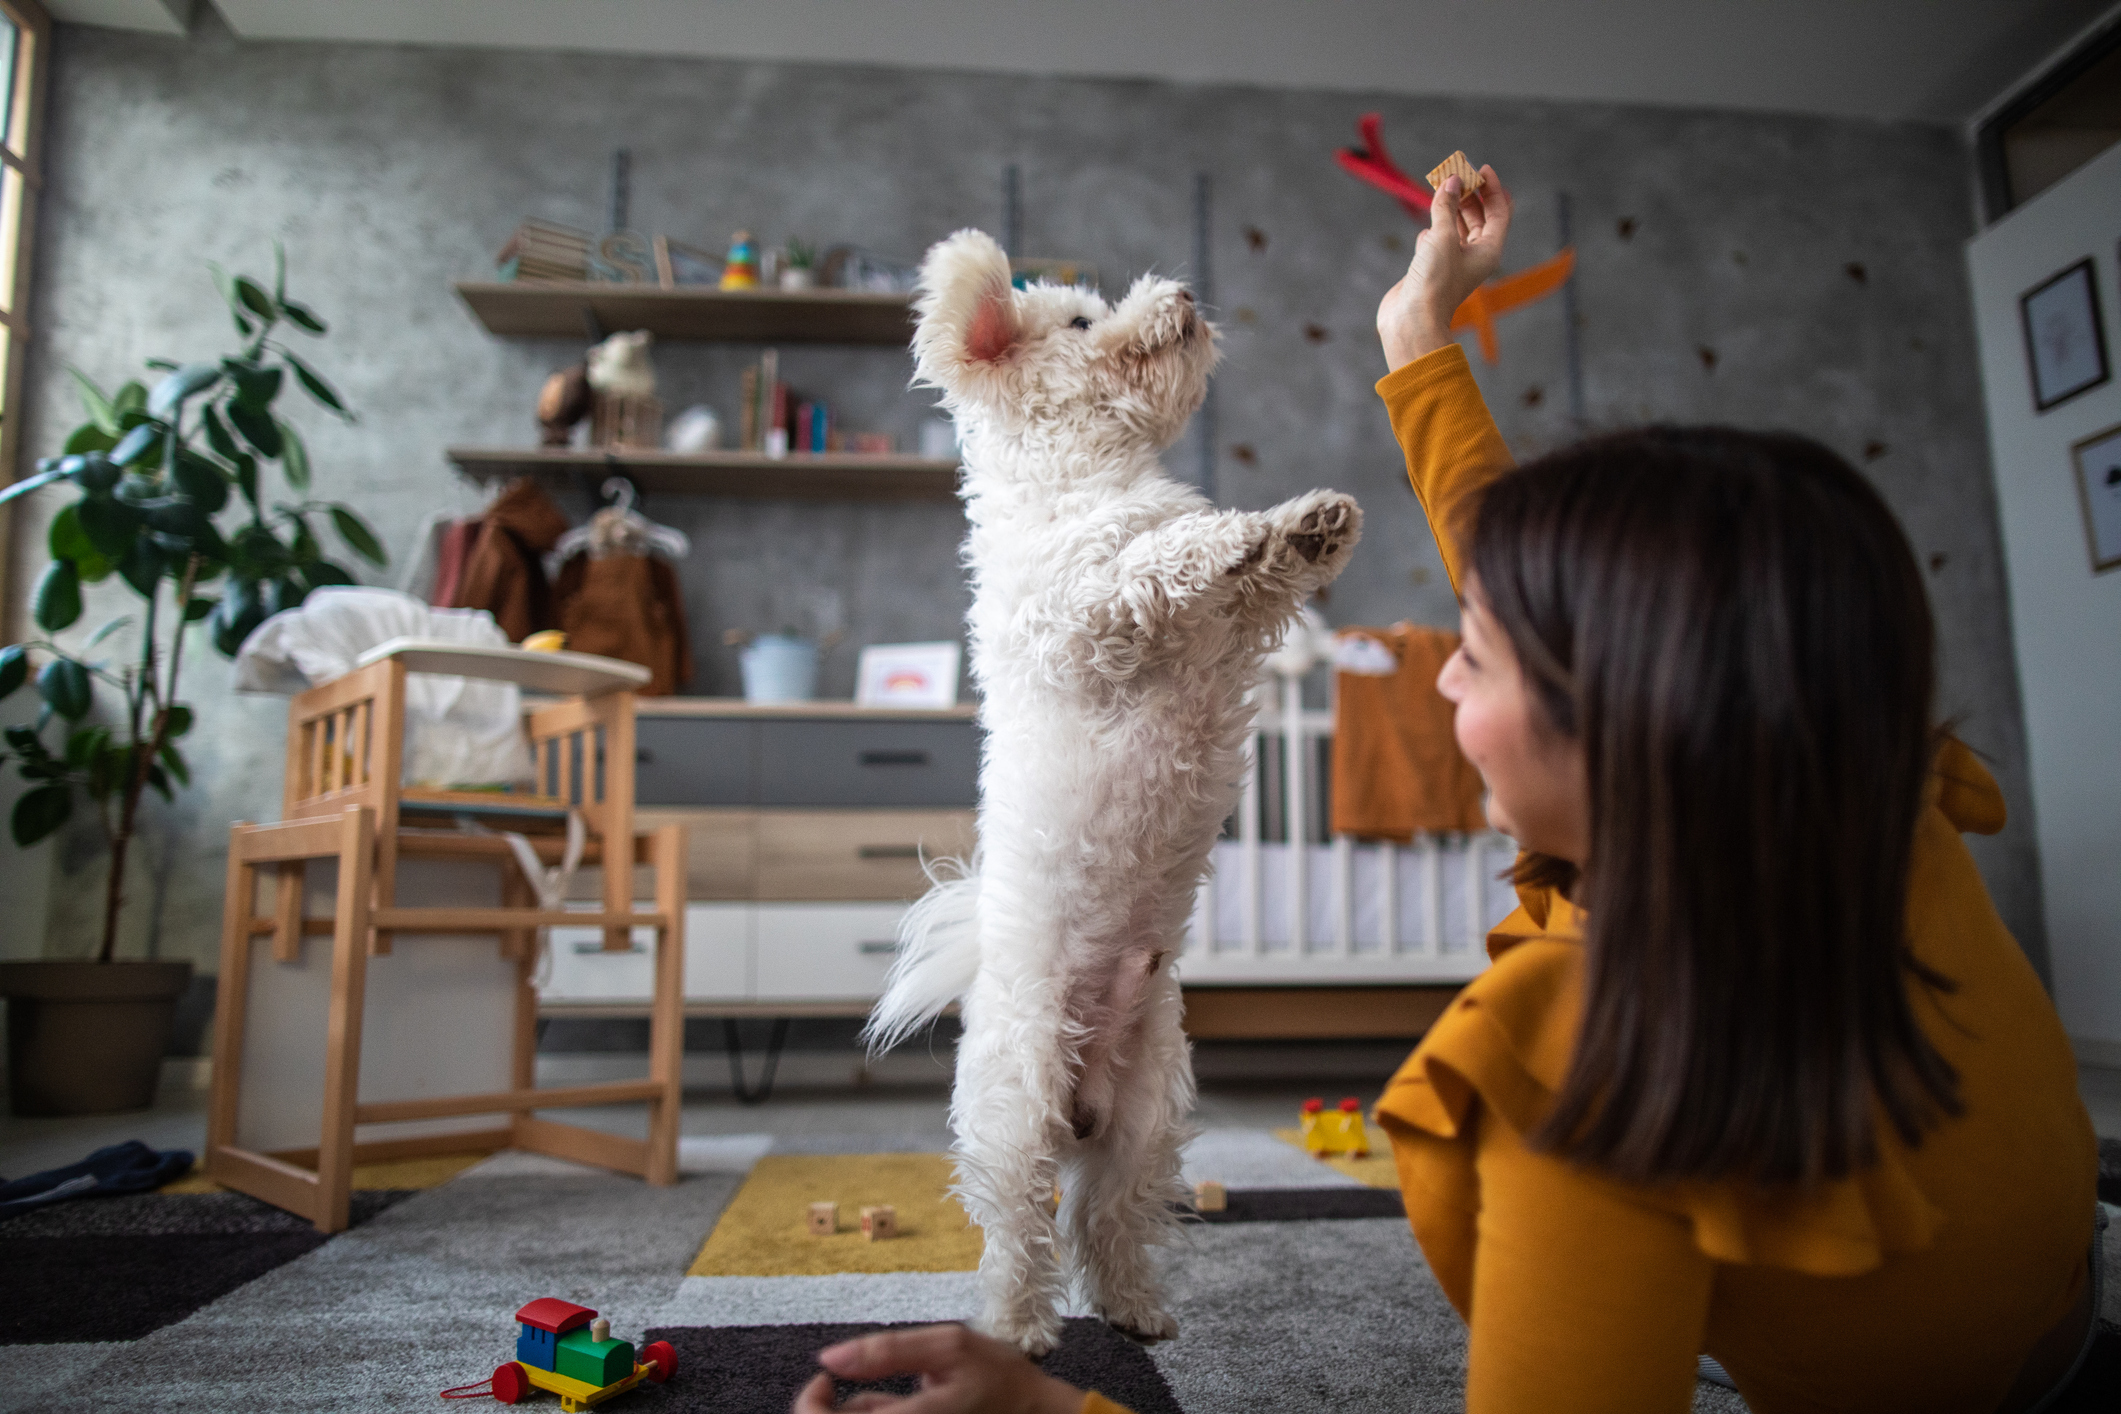 Young woman playing with fluffy pet at home, dog jumping and trying to catch the toy